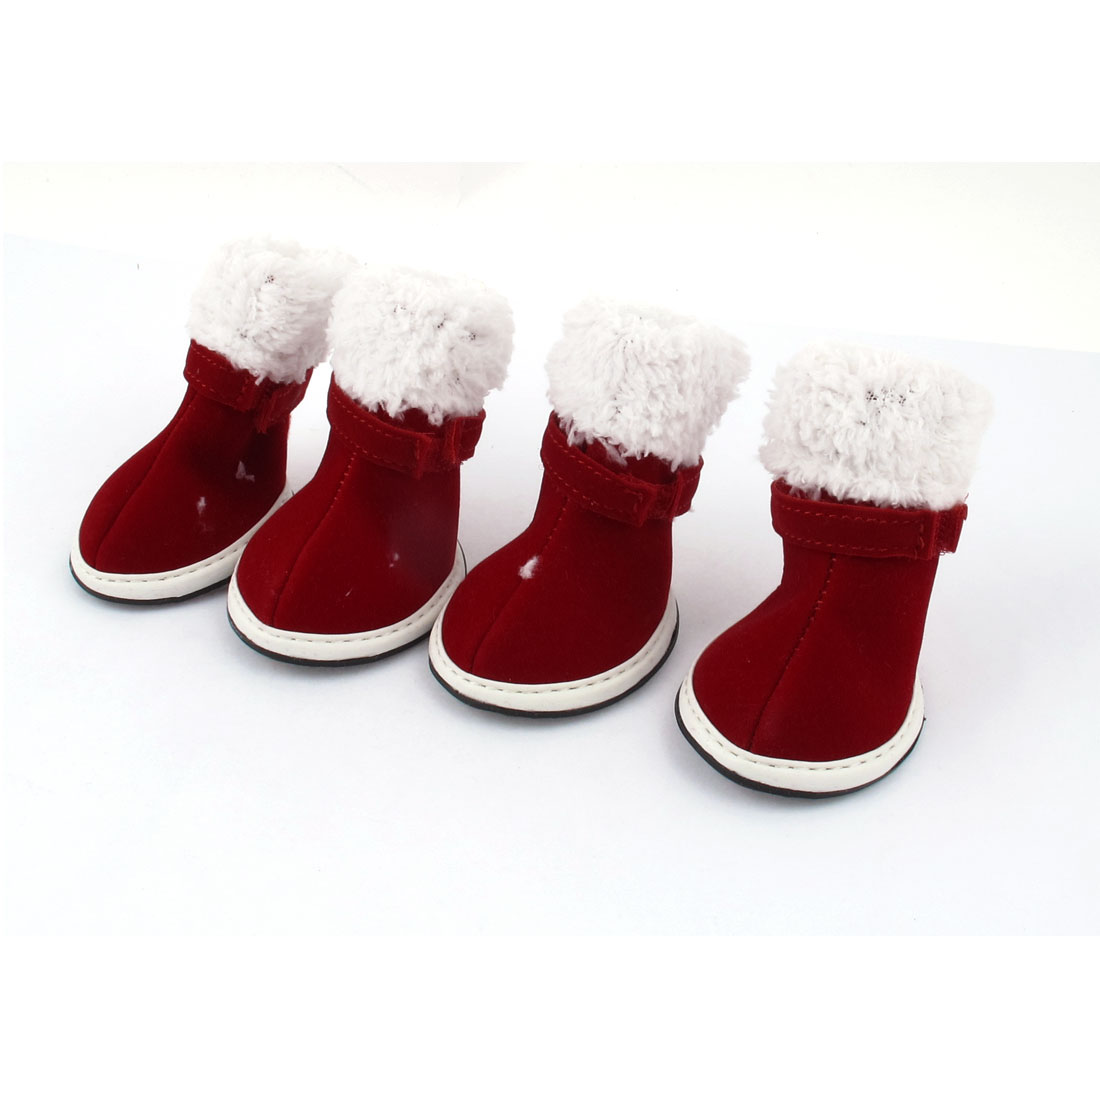 Unique Bargains 2 Pair Pet Dog Winter Warm Christmas Shoes Boots Booties Red White Size XS